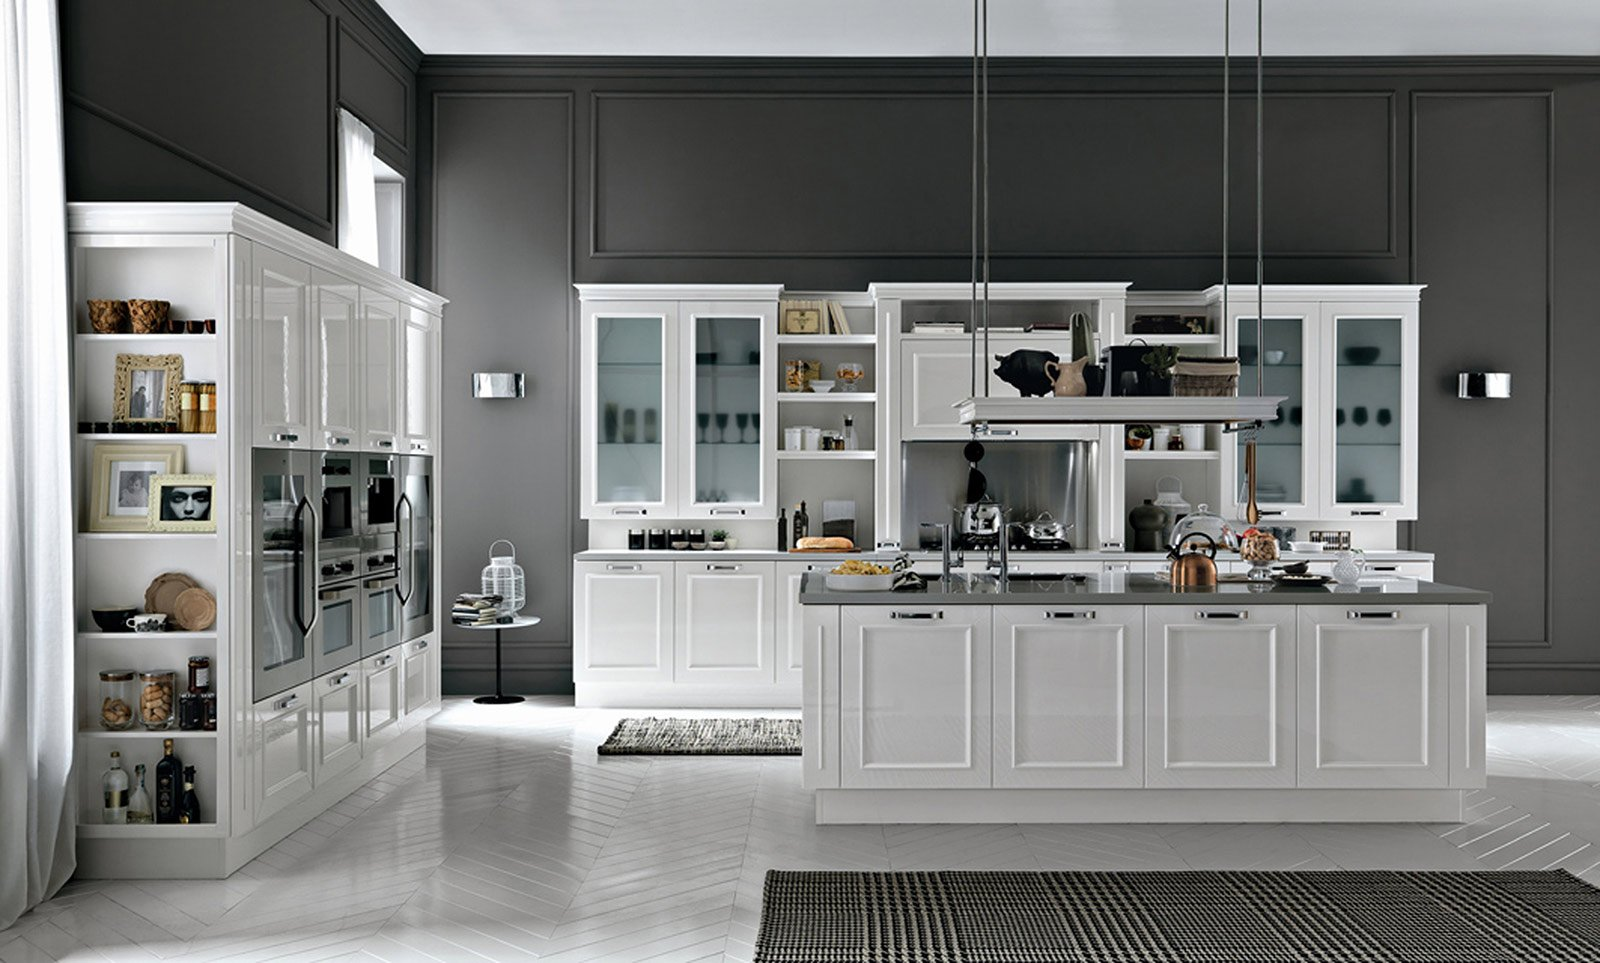 Stunning Piastrelle Cucina Bianca Images - bakeroffroad.us ...